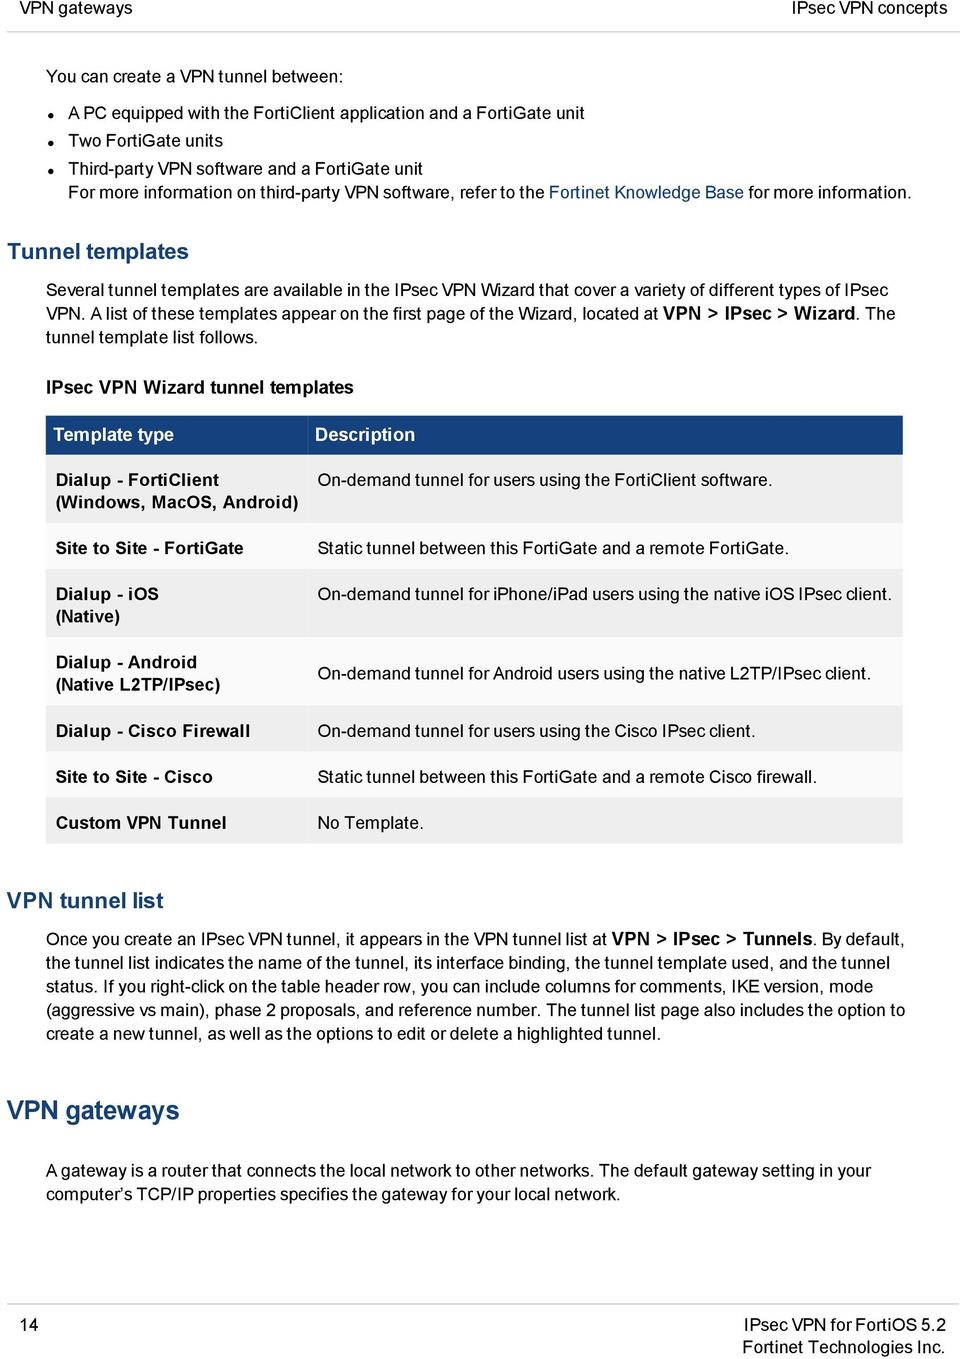 FortiOS Handbook - IPsec VPN VERSION PDF